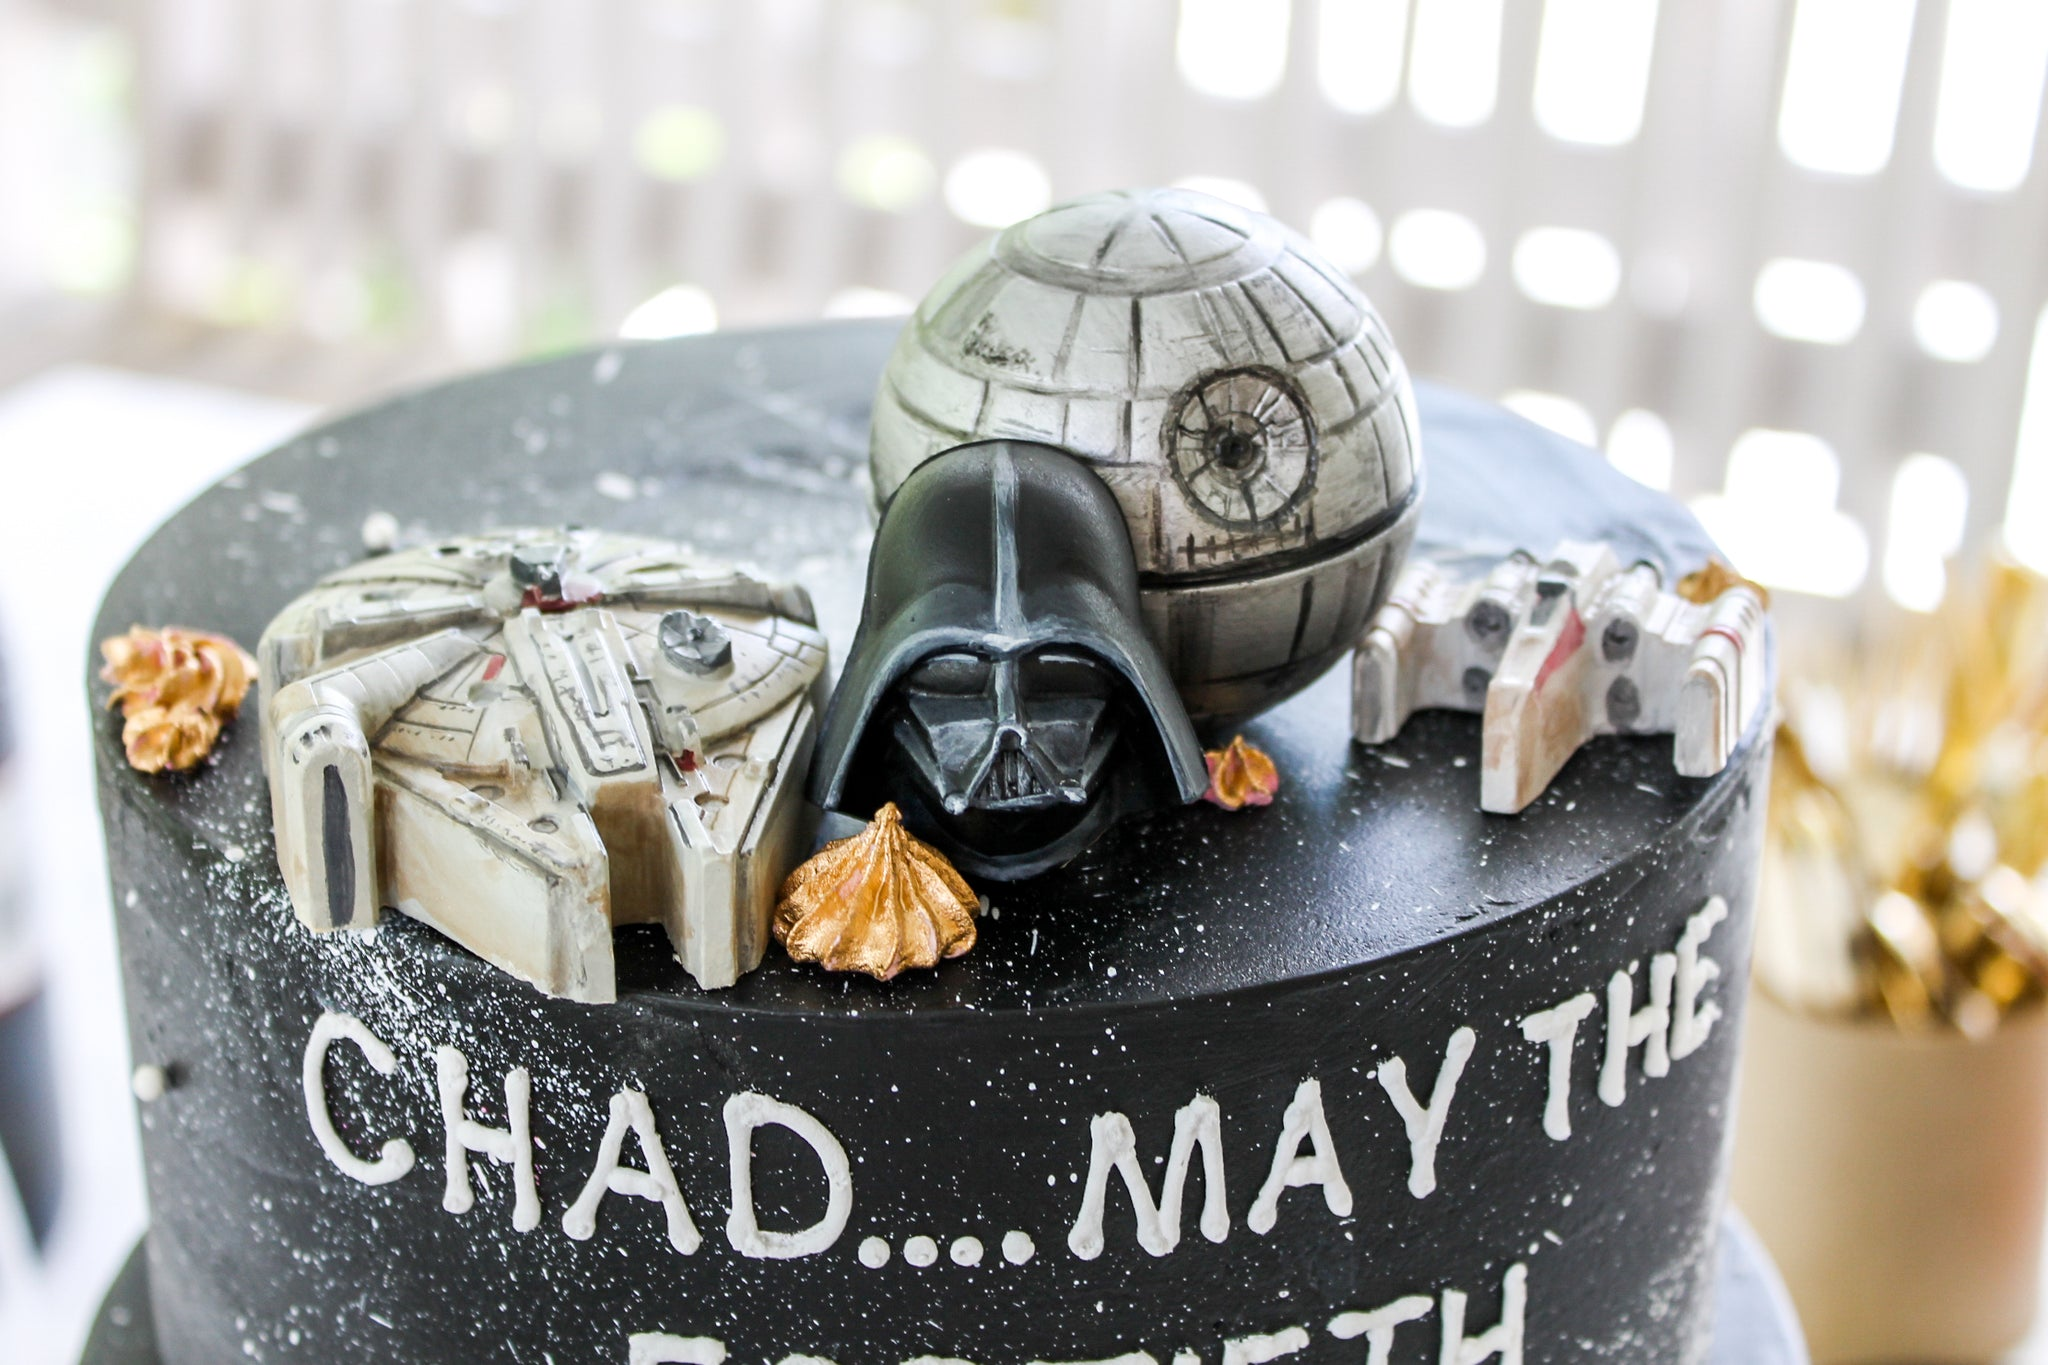 Super Star Wars Cake Toppers Confection Deception Funny Birthday Cards Online Bapapcheapnameinfo